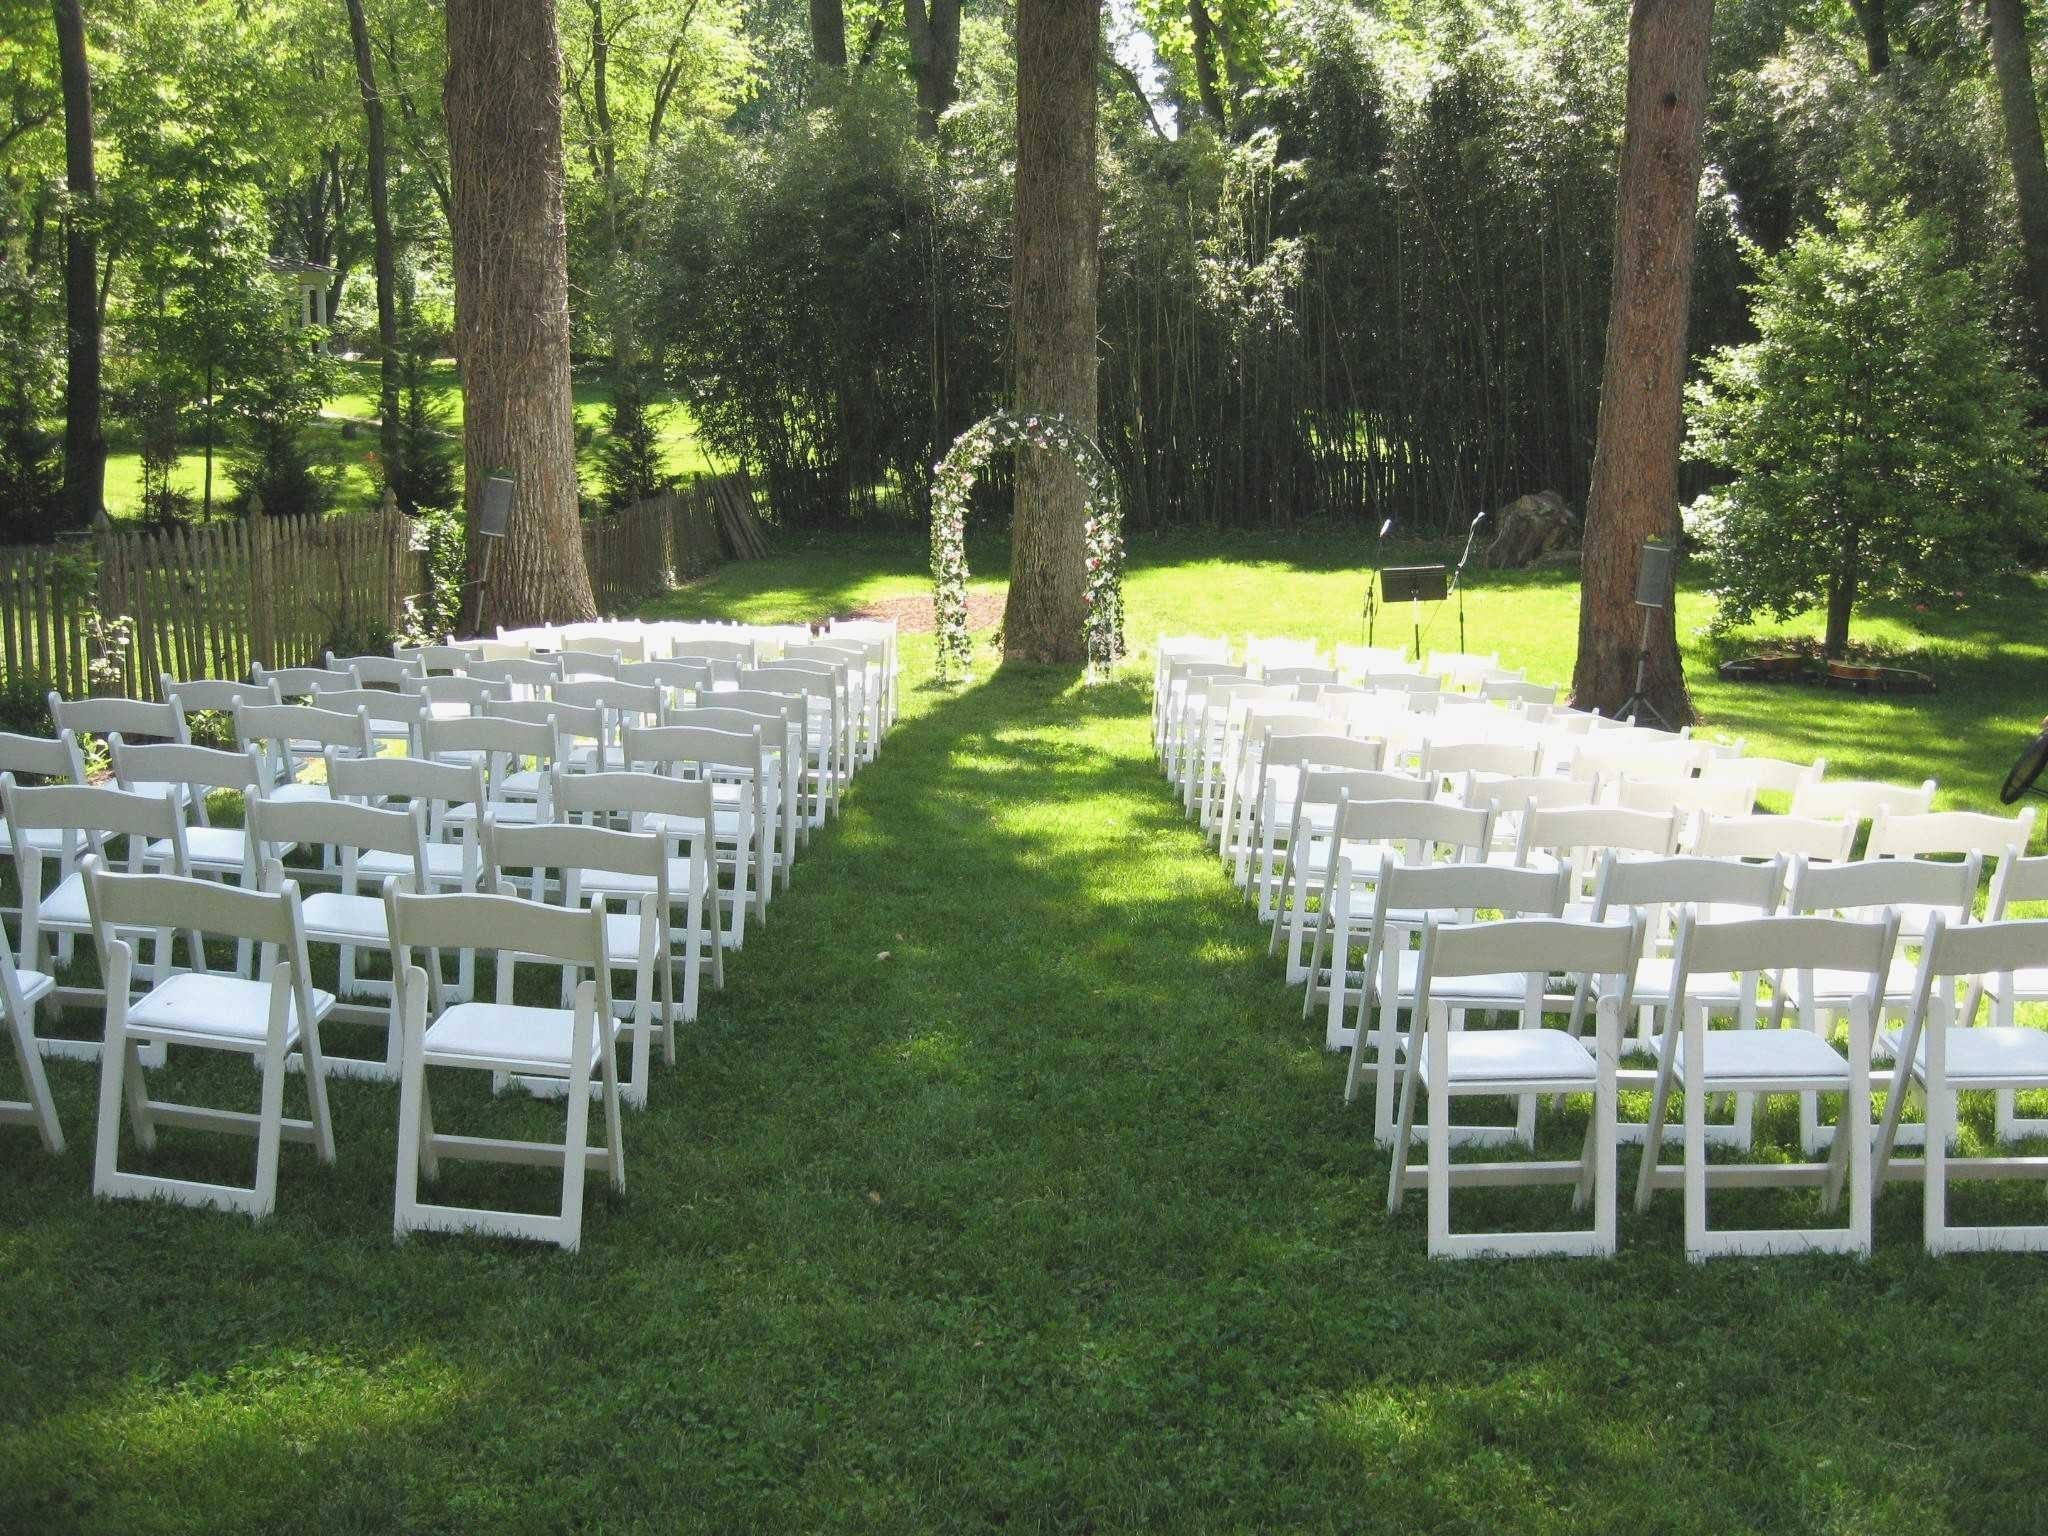 10 Elegant Outdoor Wedding Ideas For Summer ideas low cost backyard wedding small reception budget for summer